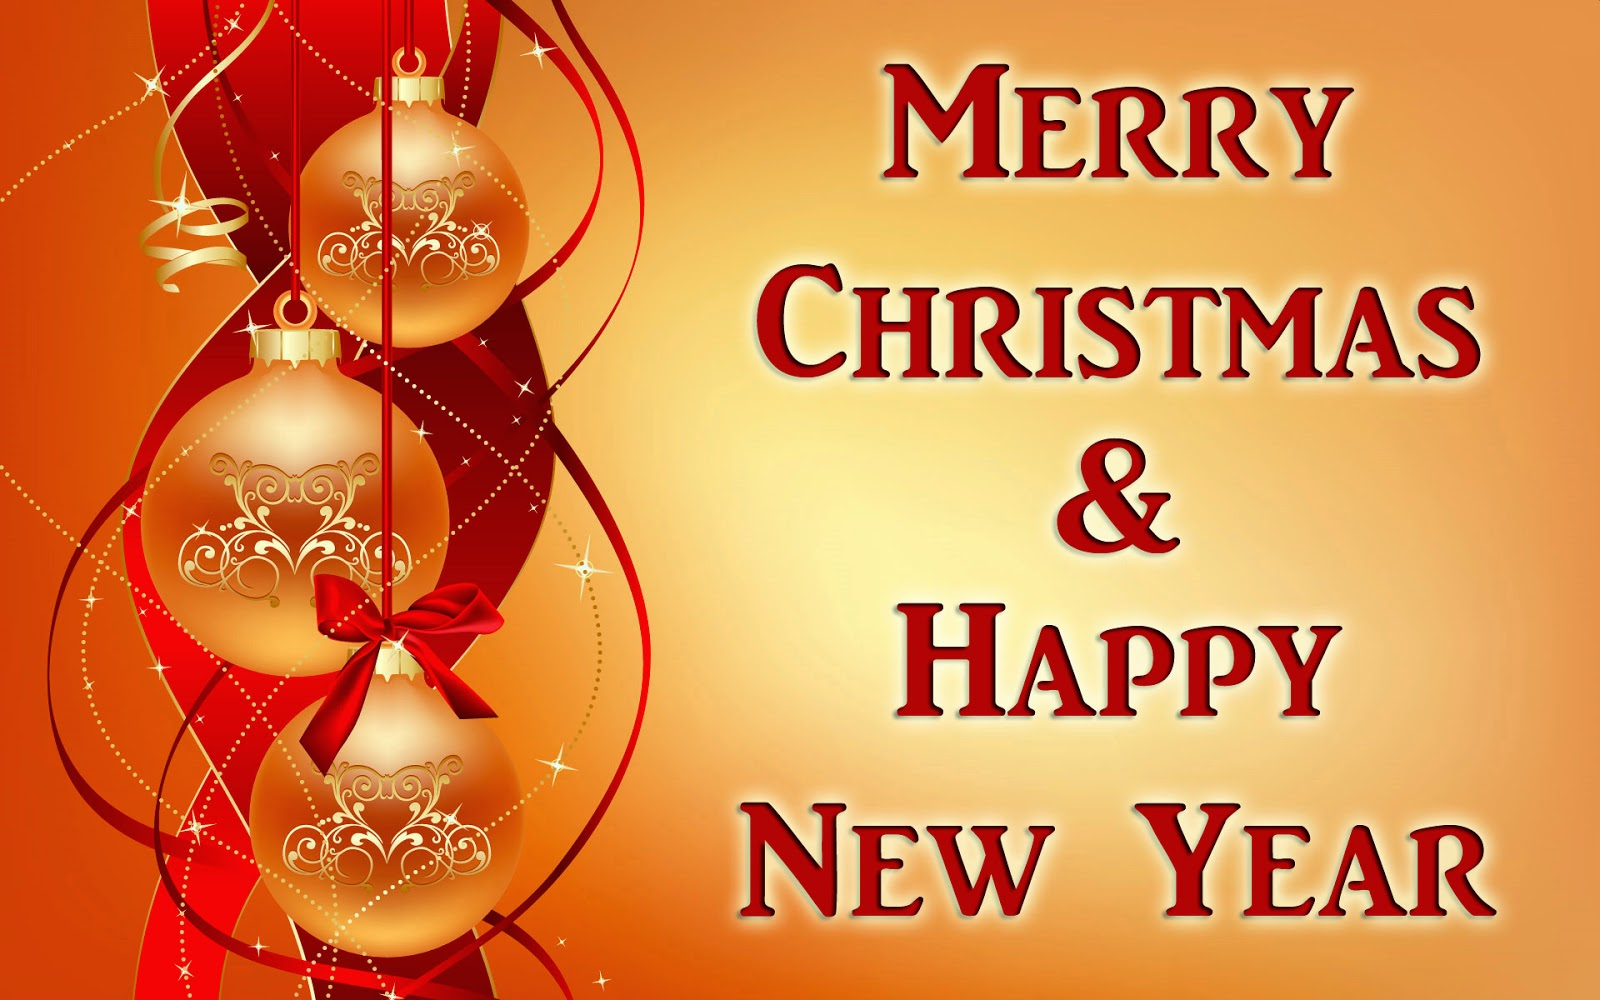 Merry Christmas And Happy New Year 2015 Wishes And Messages Happy